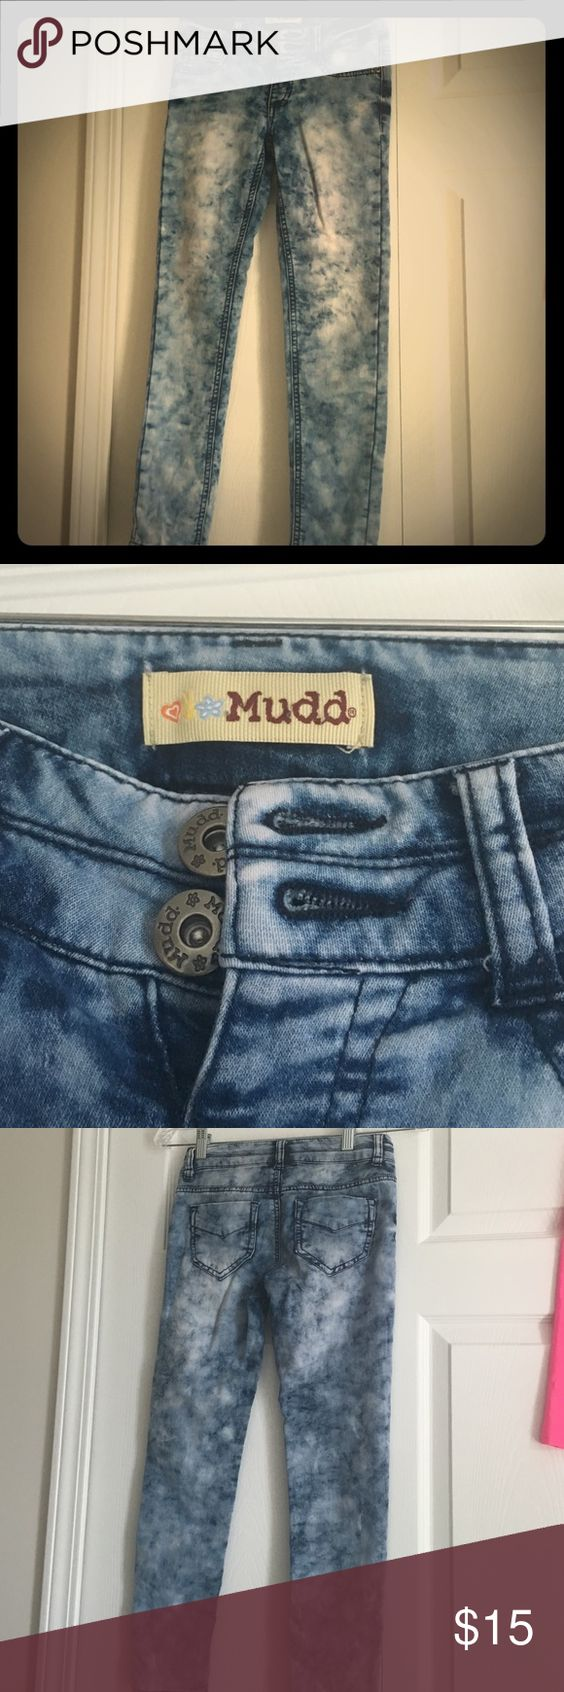 😉NWOT Acid Wash Jeans!❤️ BUNDLE THIS WITH ANOTHER SHIRT/PANTS FOR 10% OFF! These acid wash jeans are size 10. They fit VERY comfortably with nice, soft material. No holes/rips/stains in this pair of jeans!❤️ Mudd Bottoms Jeans